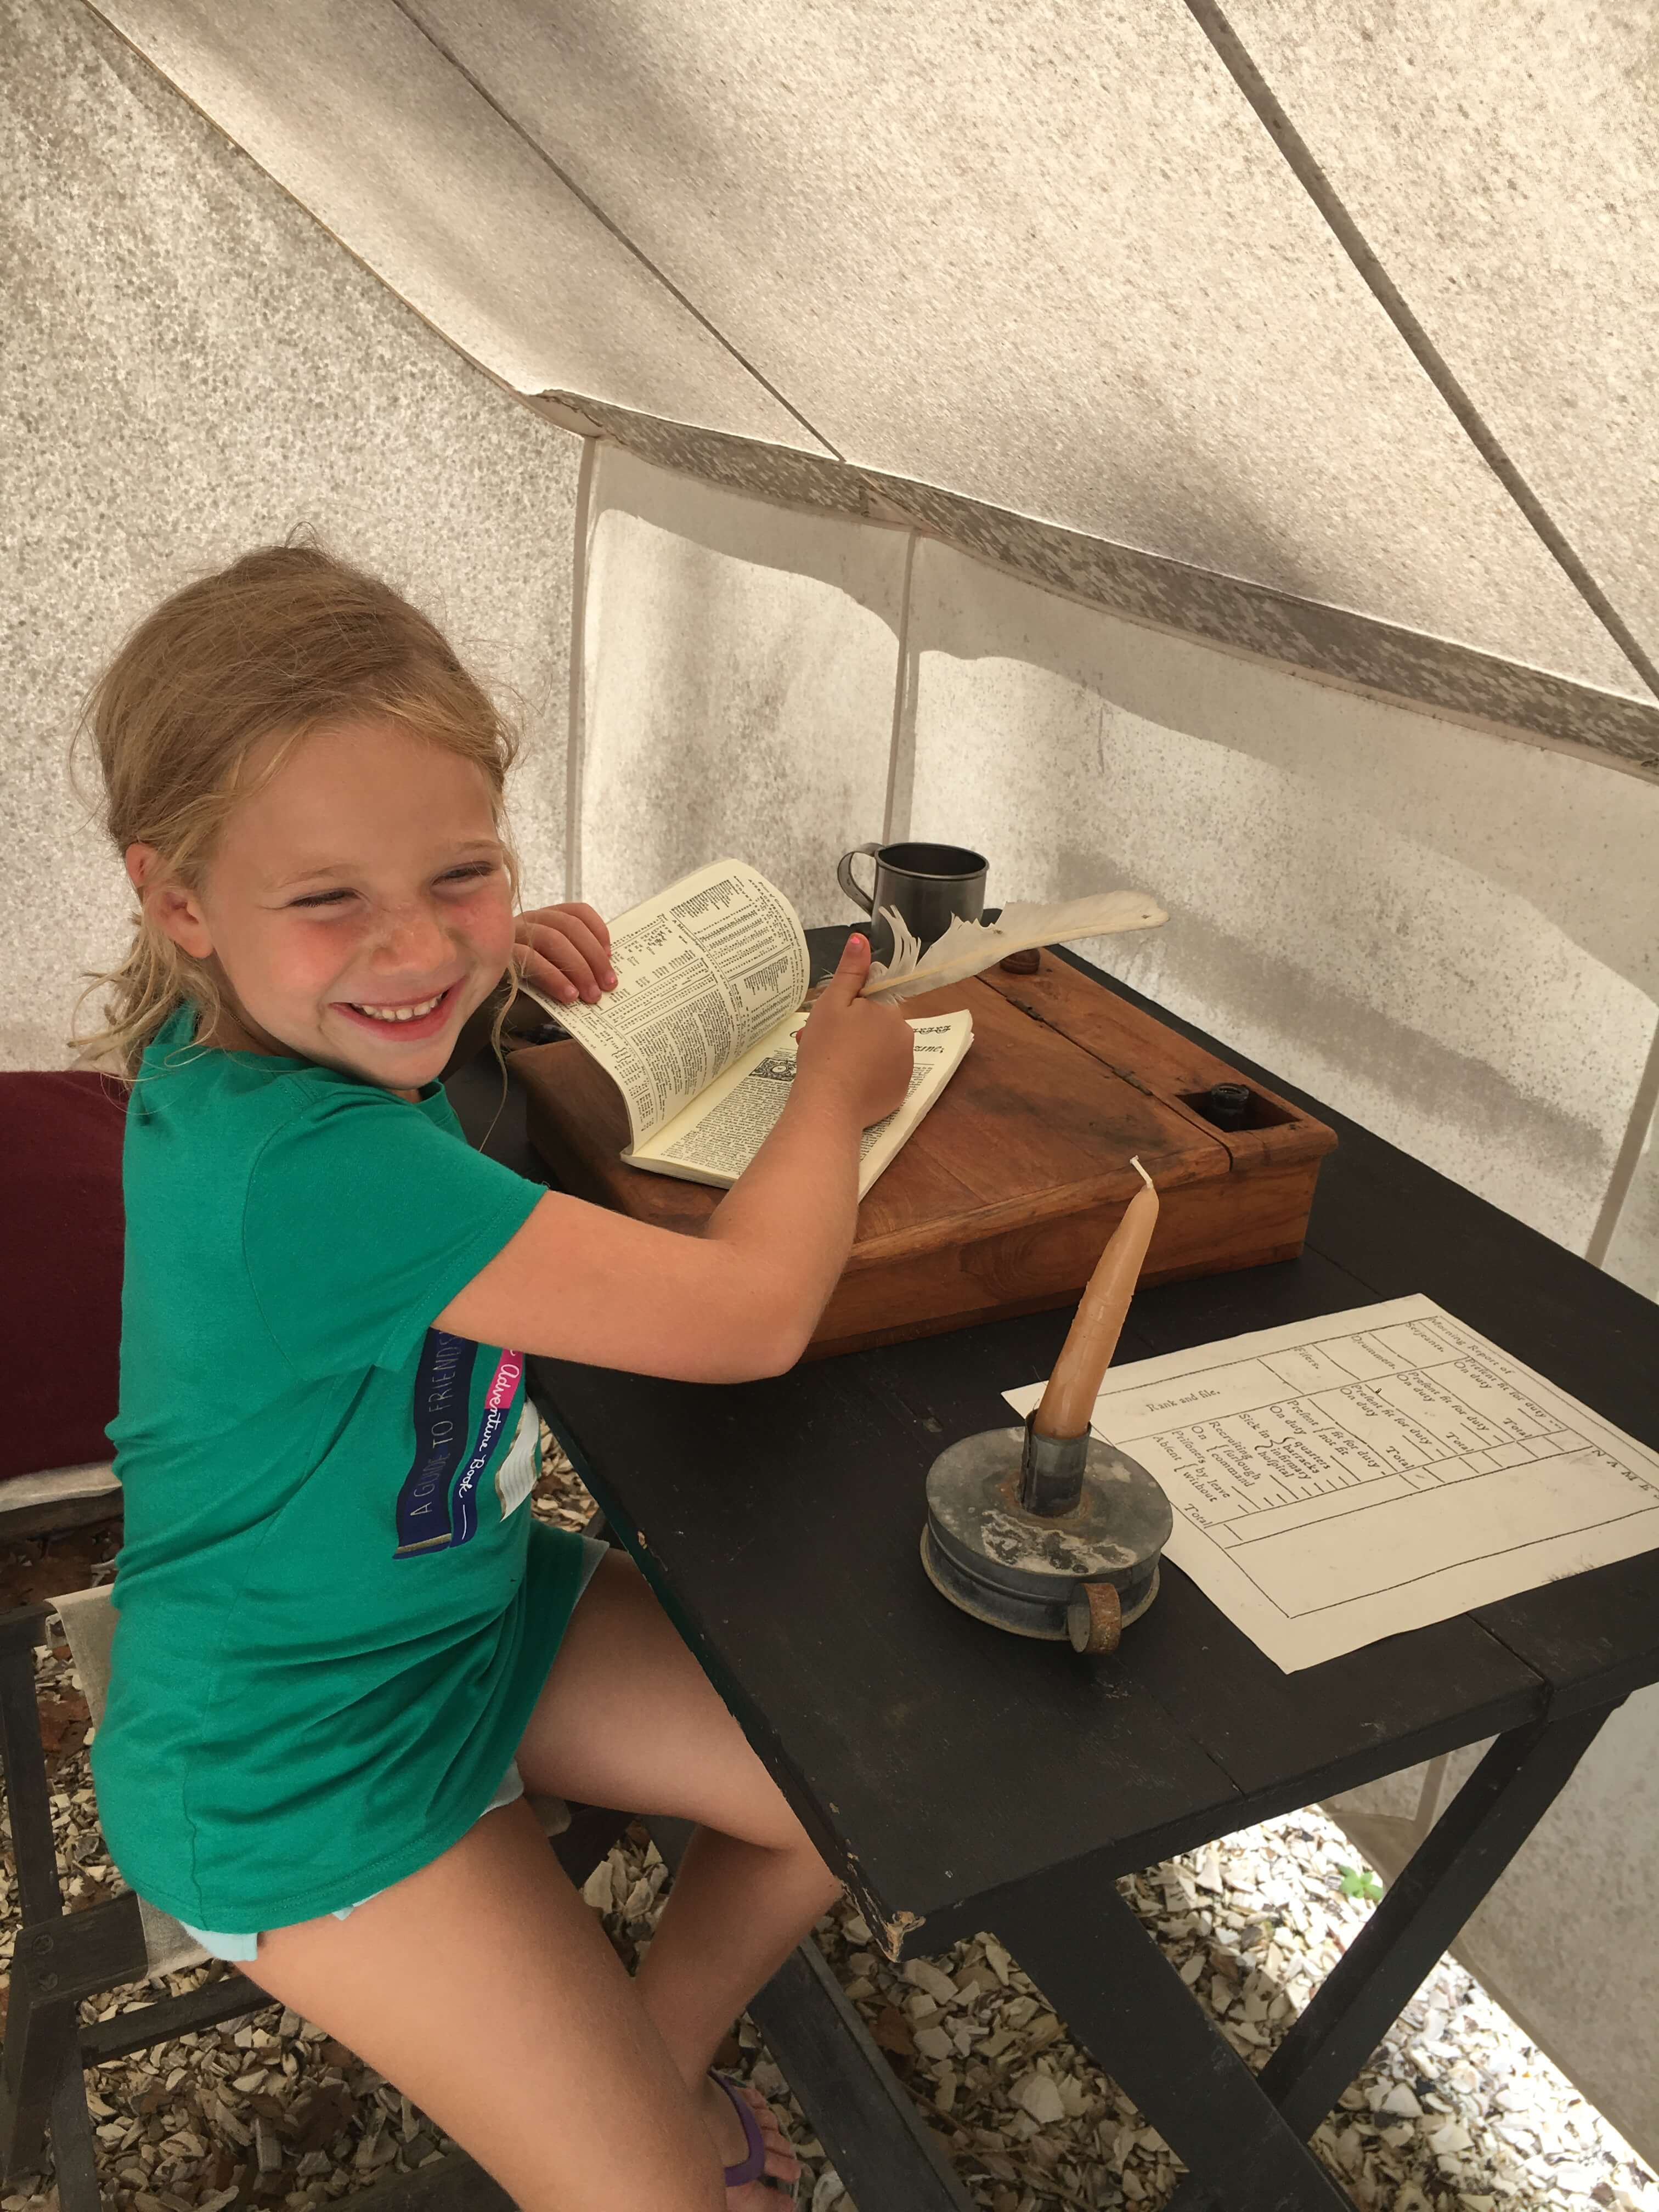 forst at American Revolution Museum: williamsburgh with kids